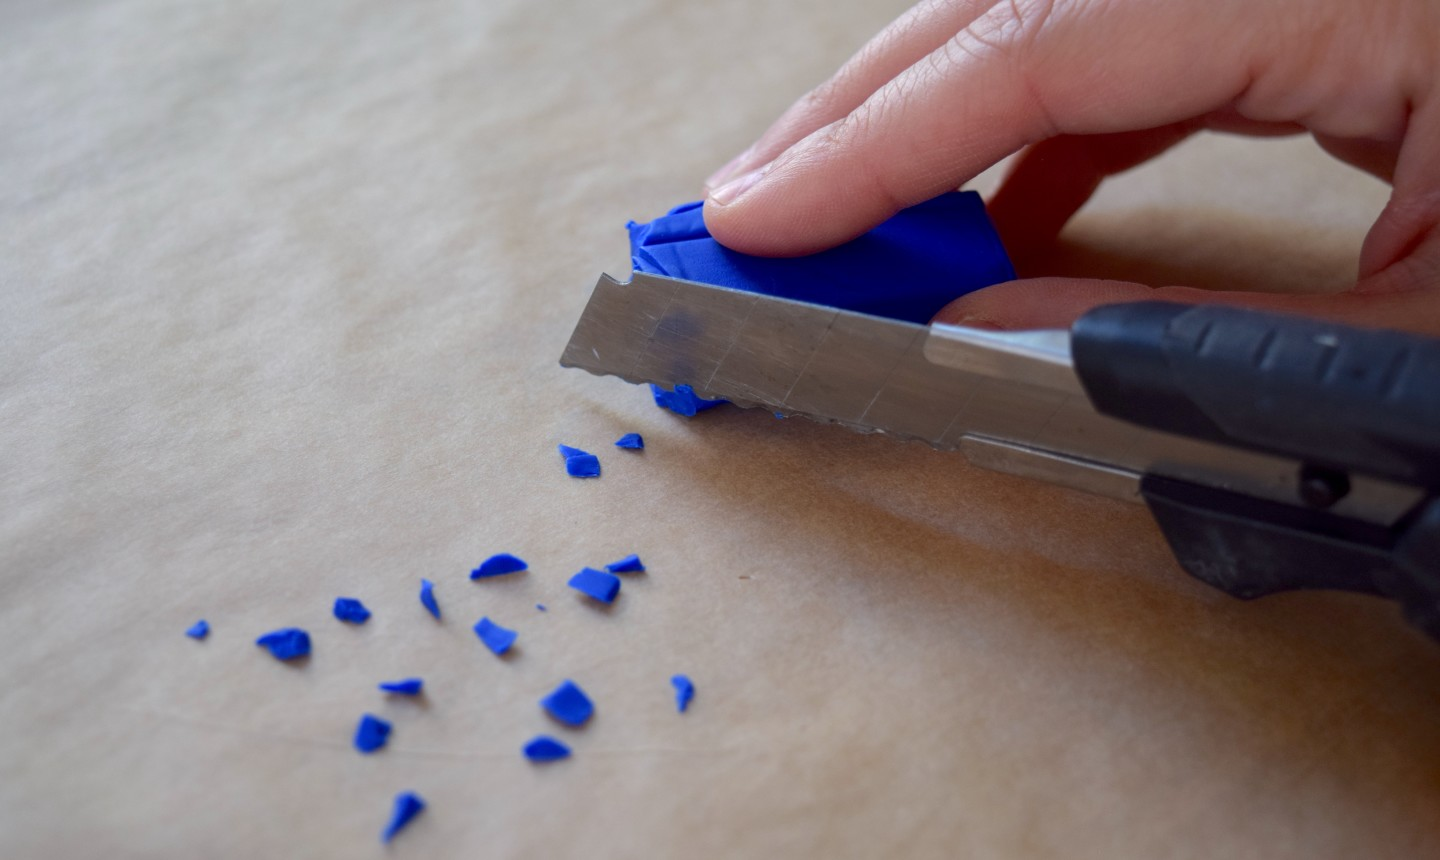 cutting small bits of blue clay